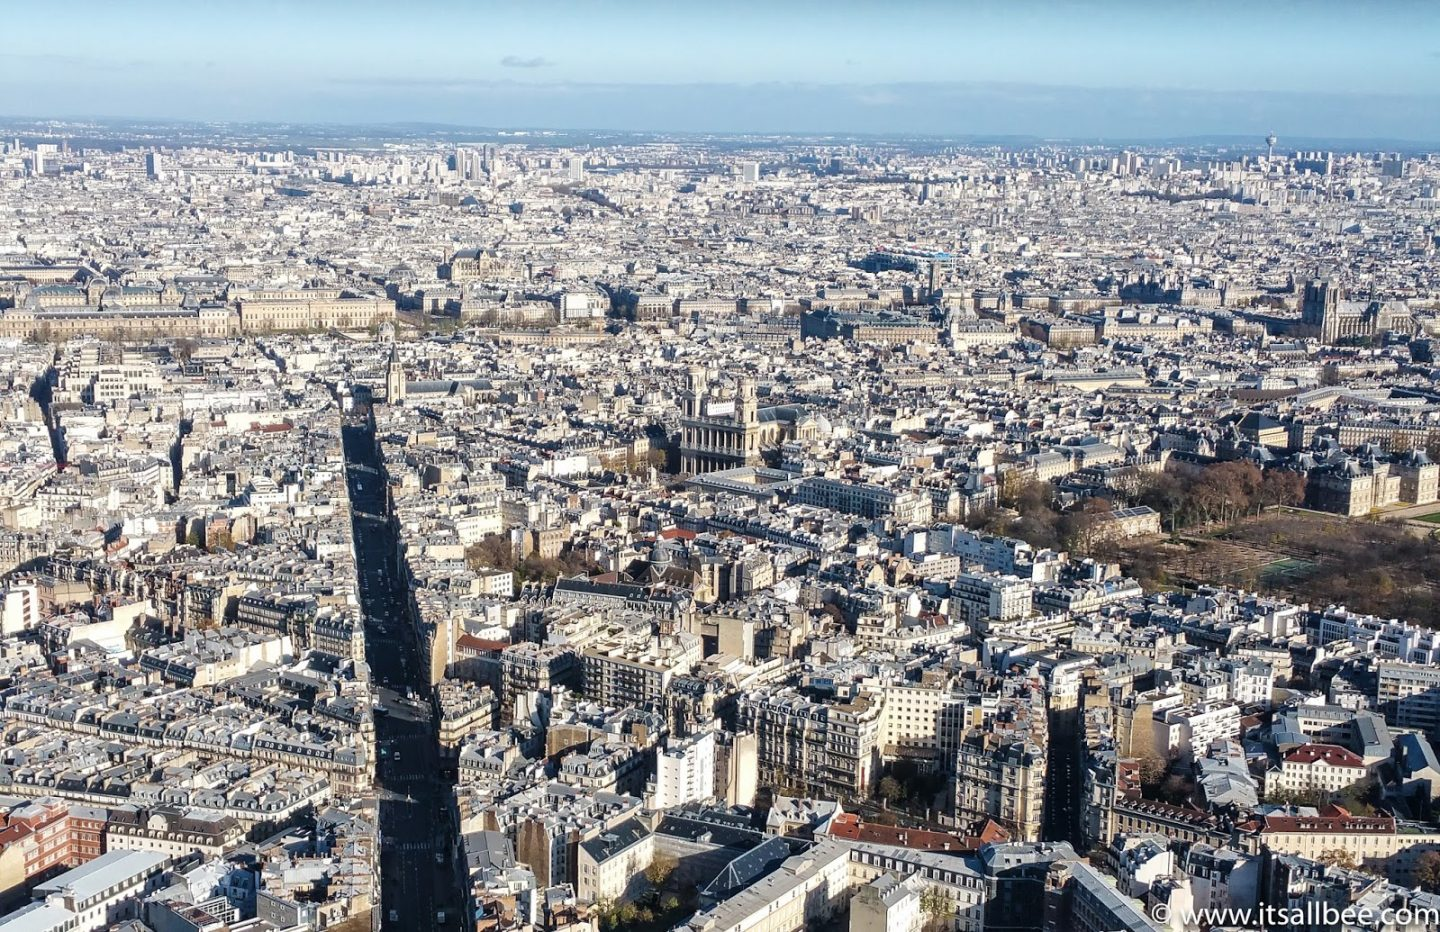 Views from Montparnasse